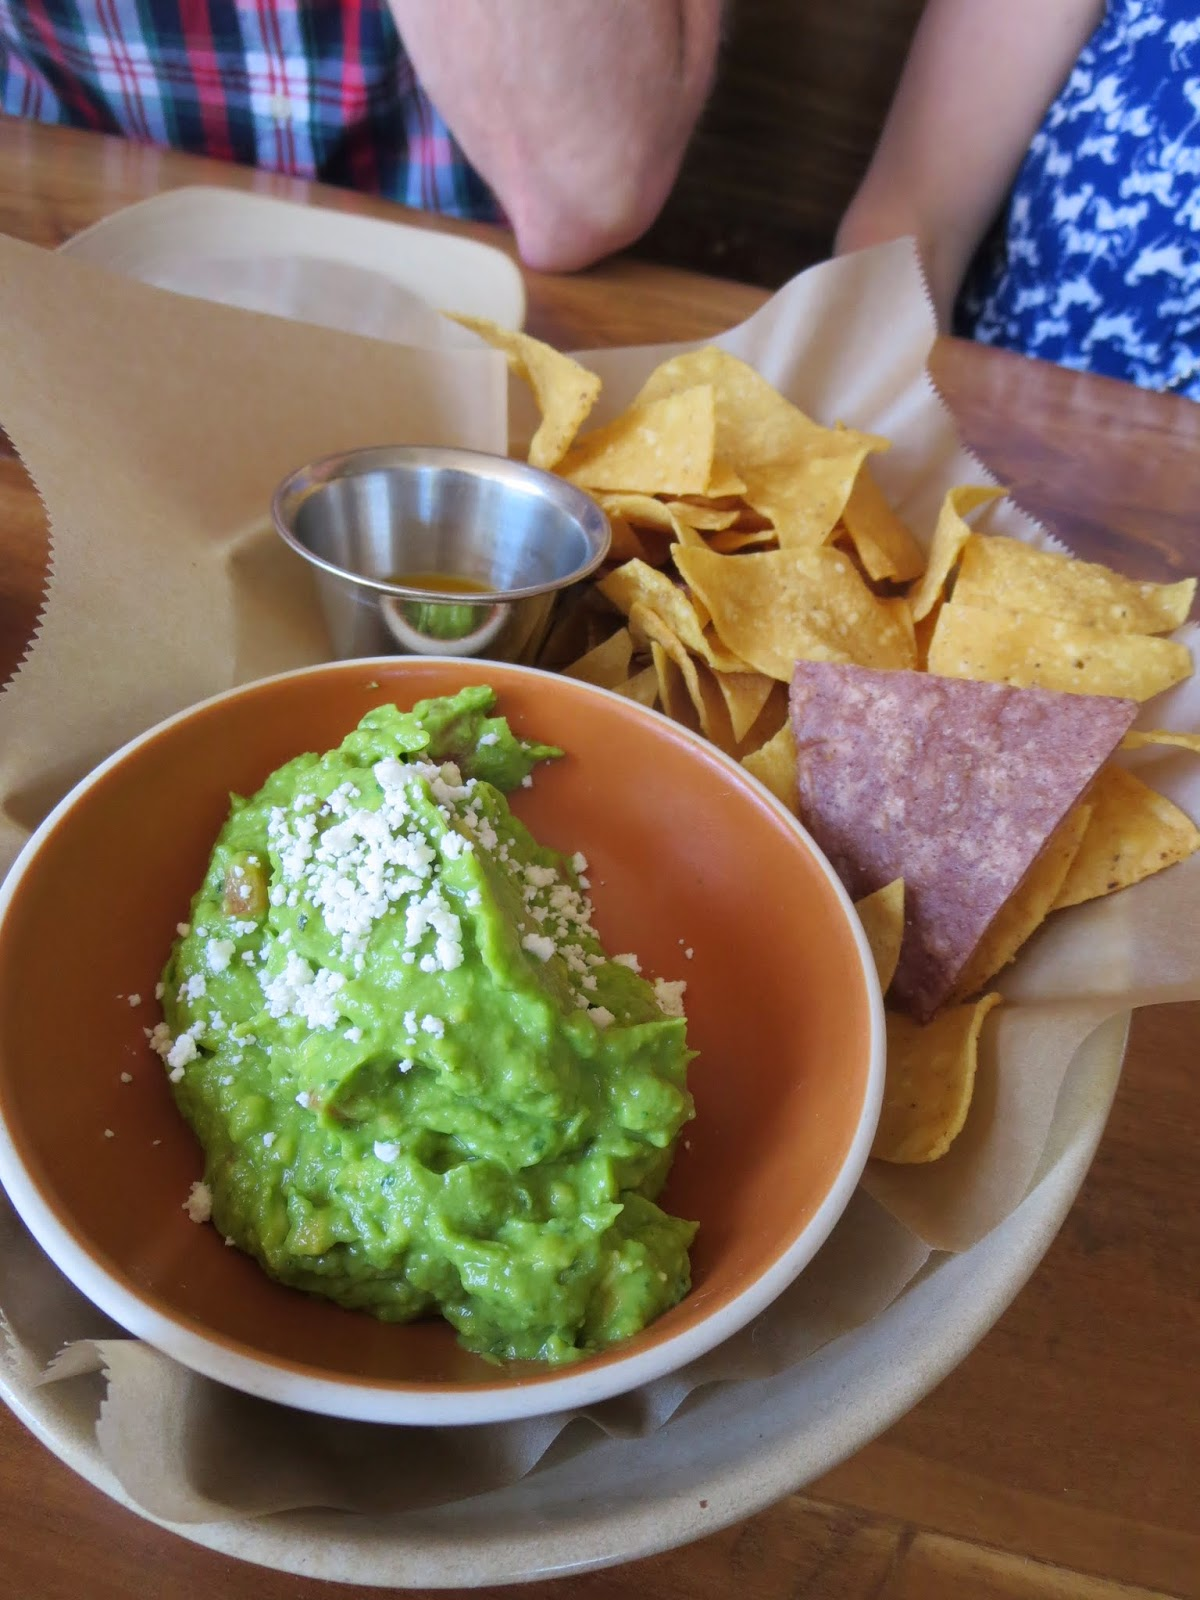 Guacamole and chips at Padrecito in San Francisco